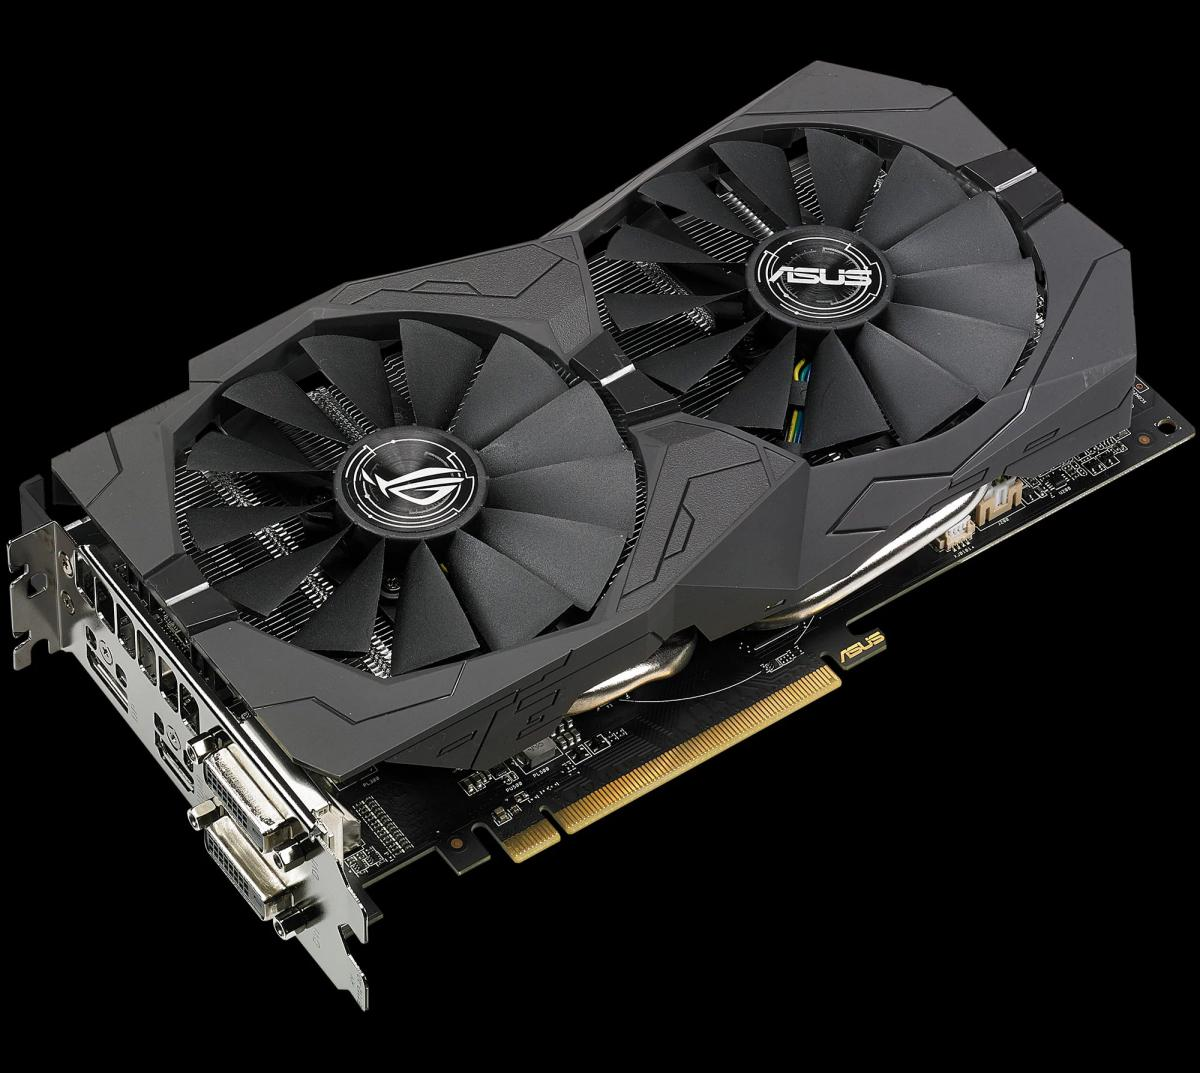 ASUS ROG Launches Strix RX 580 and 570